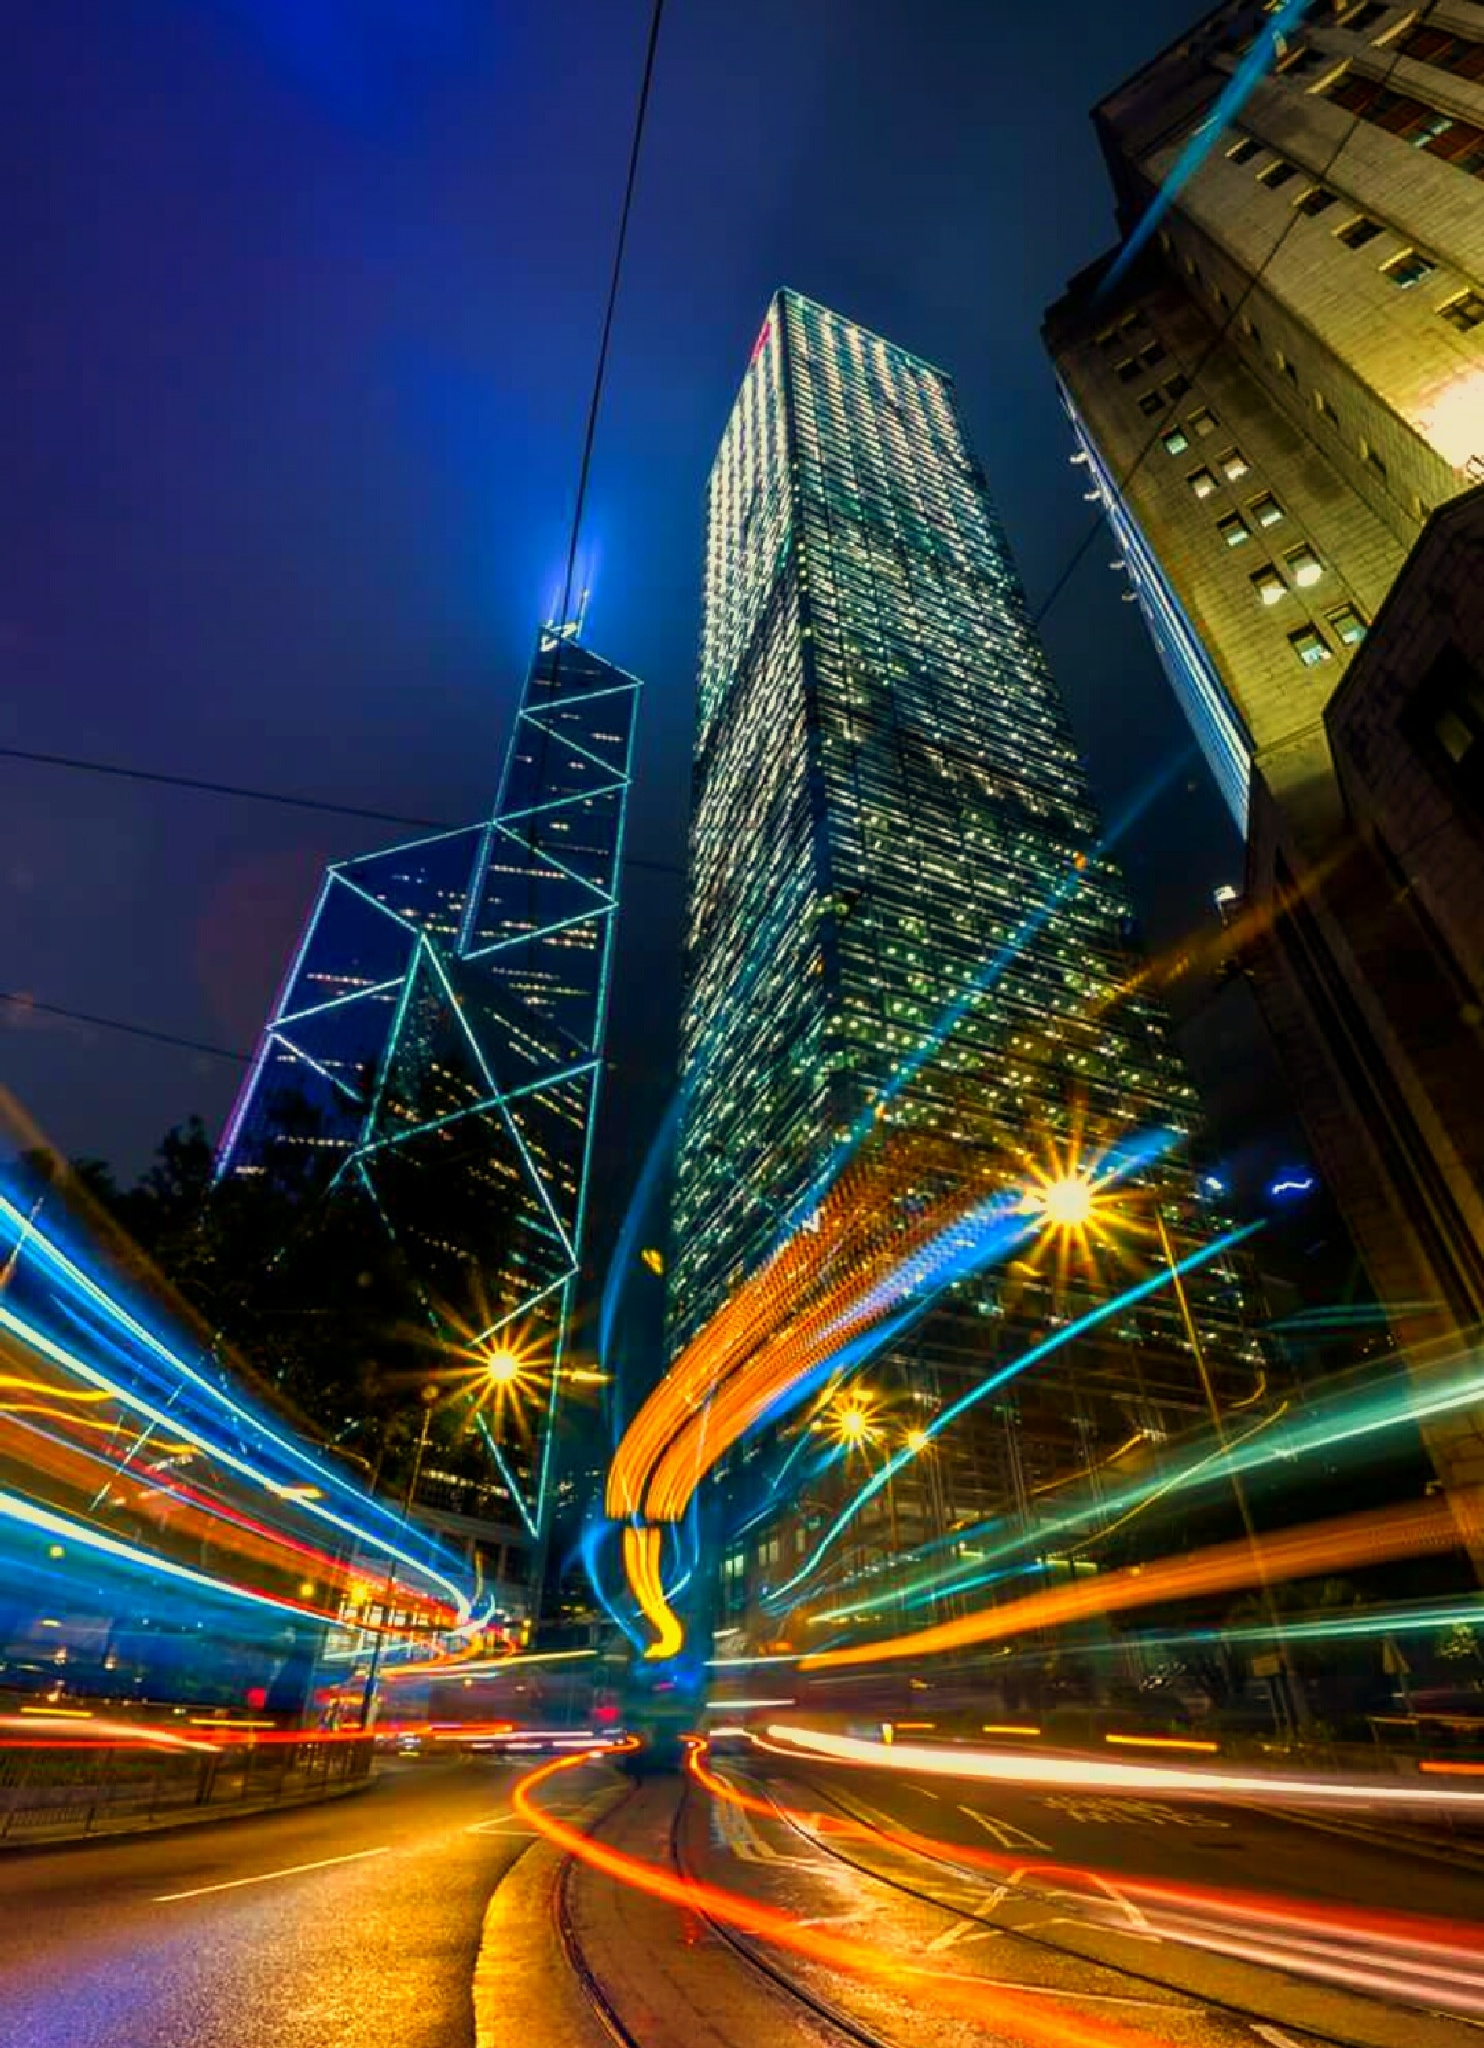 City Night trails by Crystal Chan